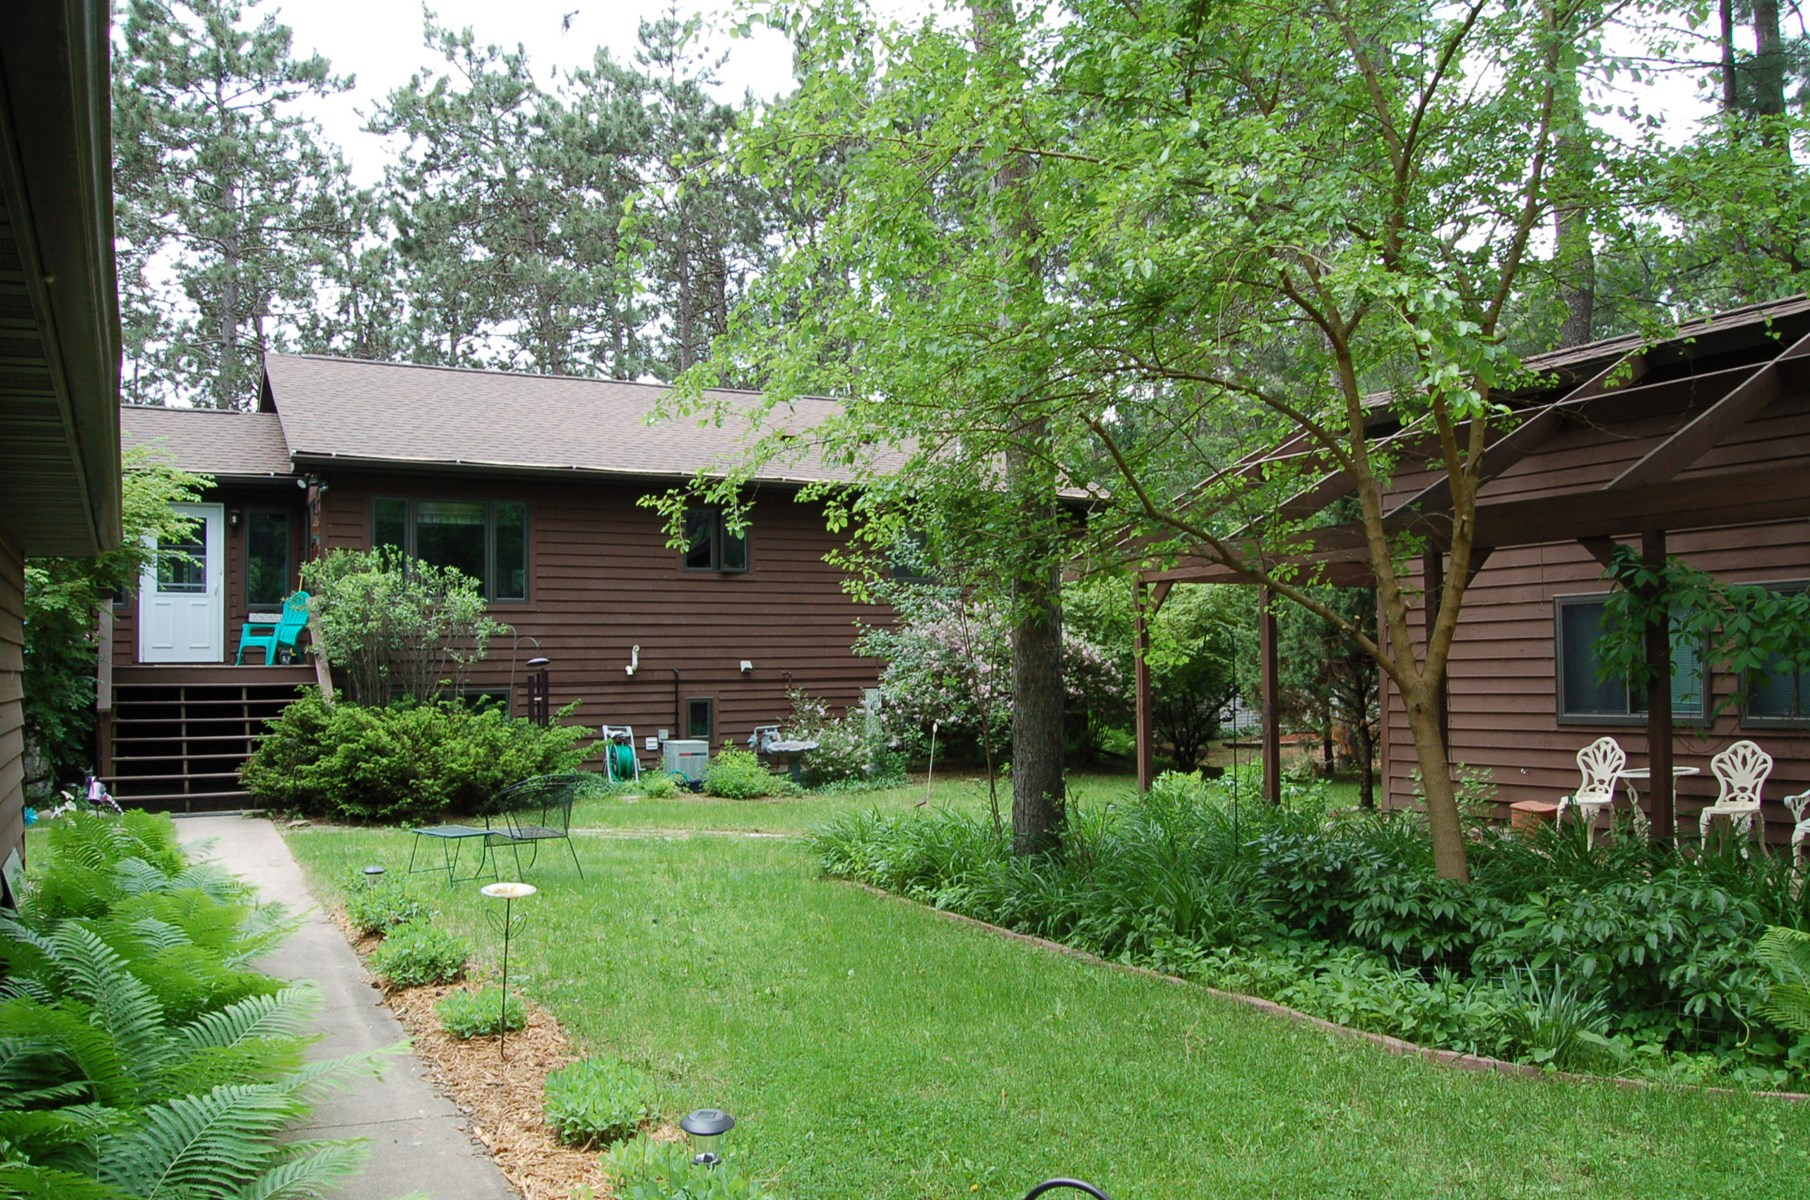 Lake Home for Sale in Waupaca, WI